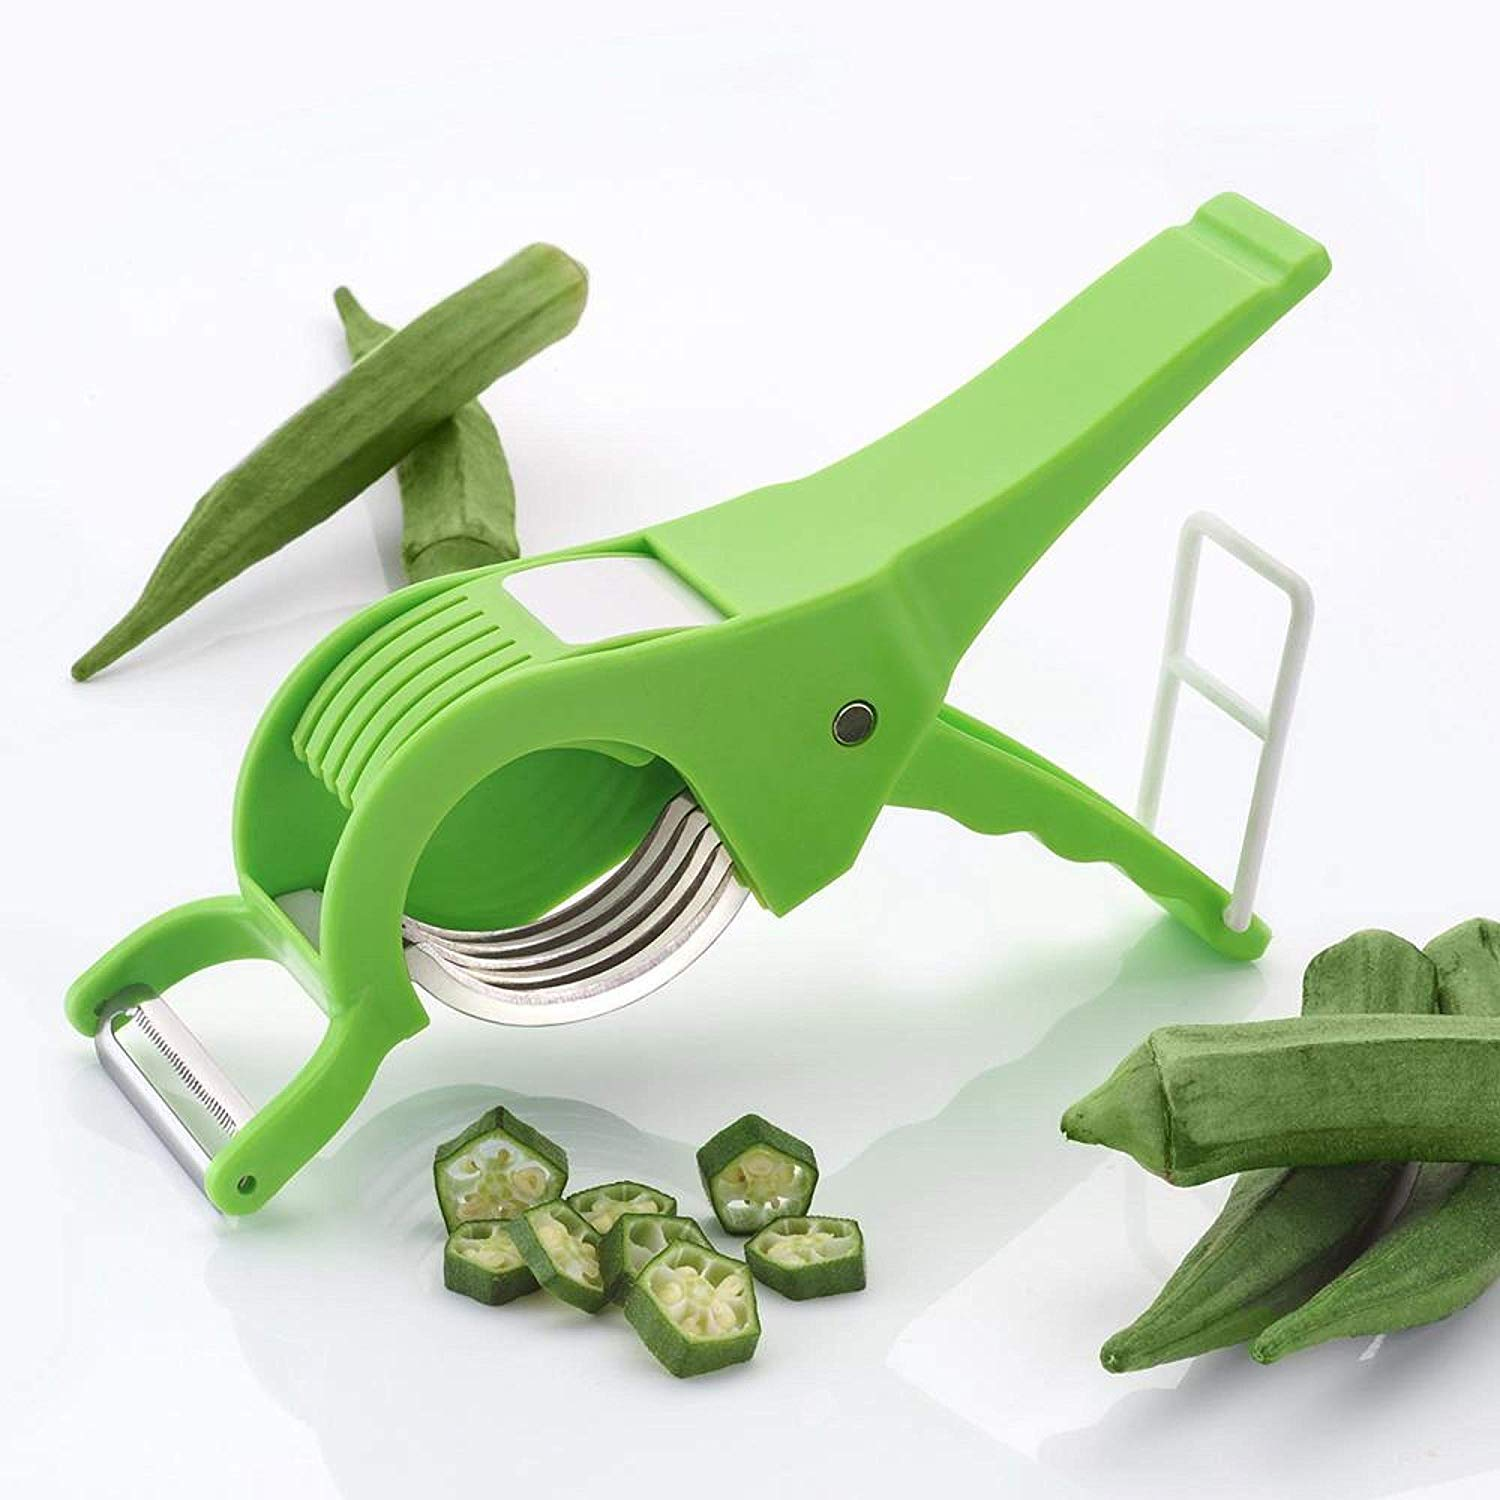 A vegetable peeler for cutting lady finger is used in above image,a best kitchen tool.